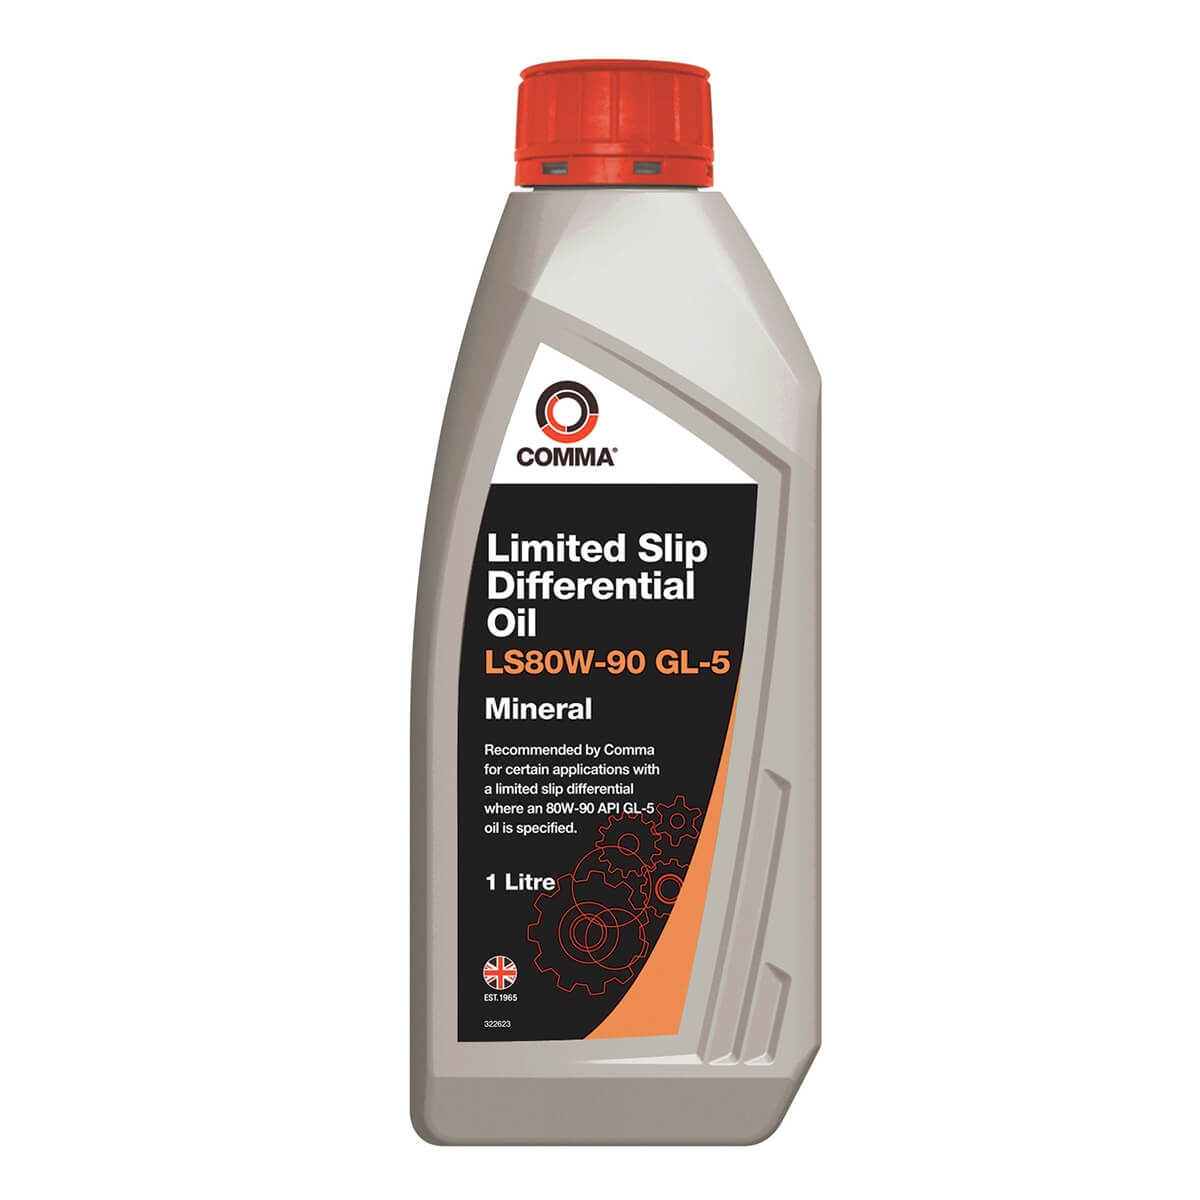 DS DS5 Diff Gear Oil